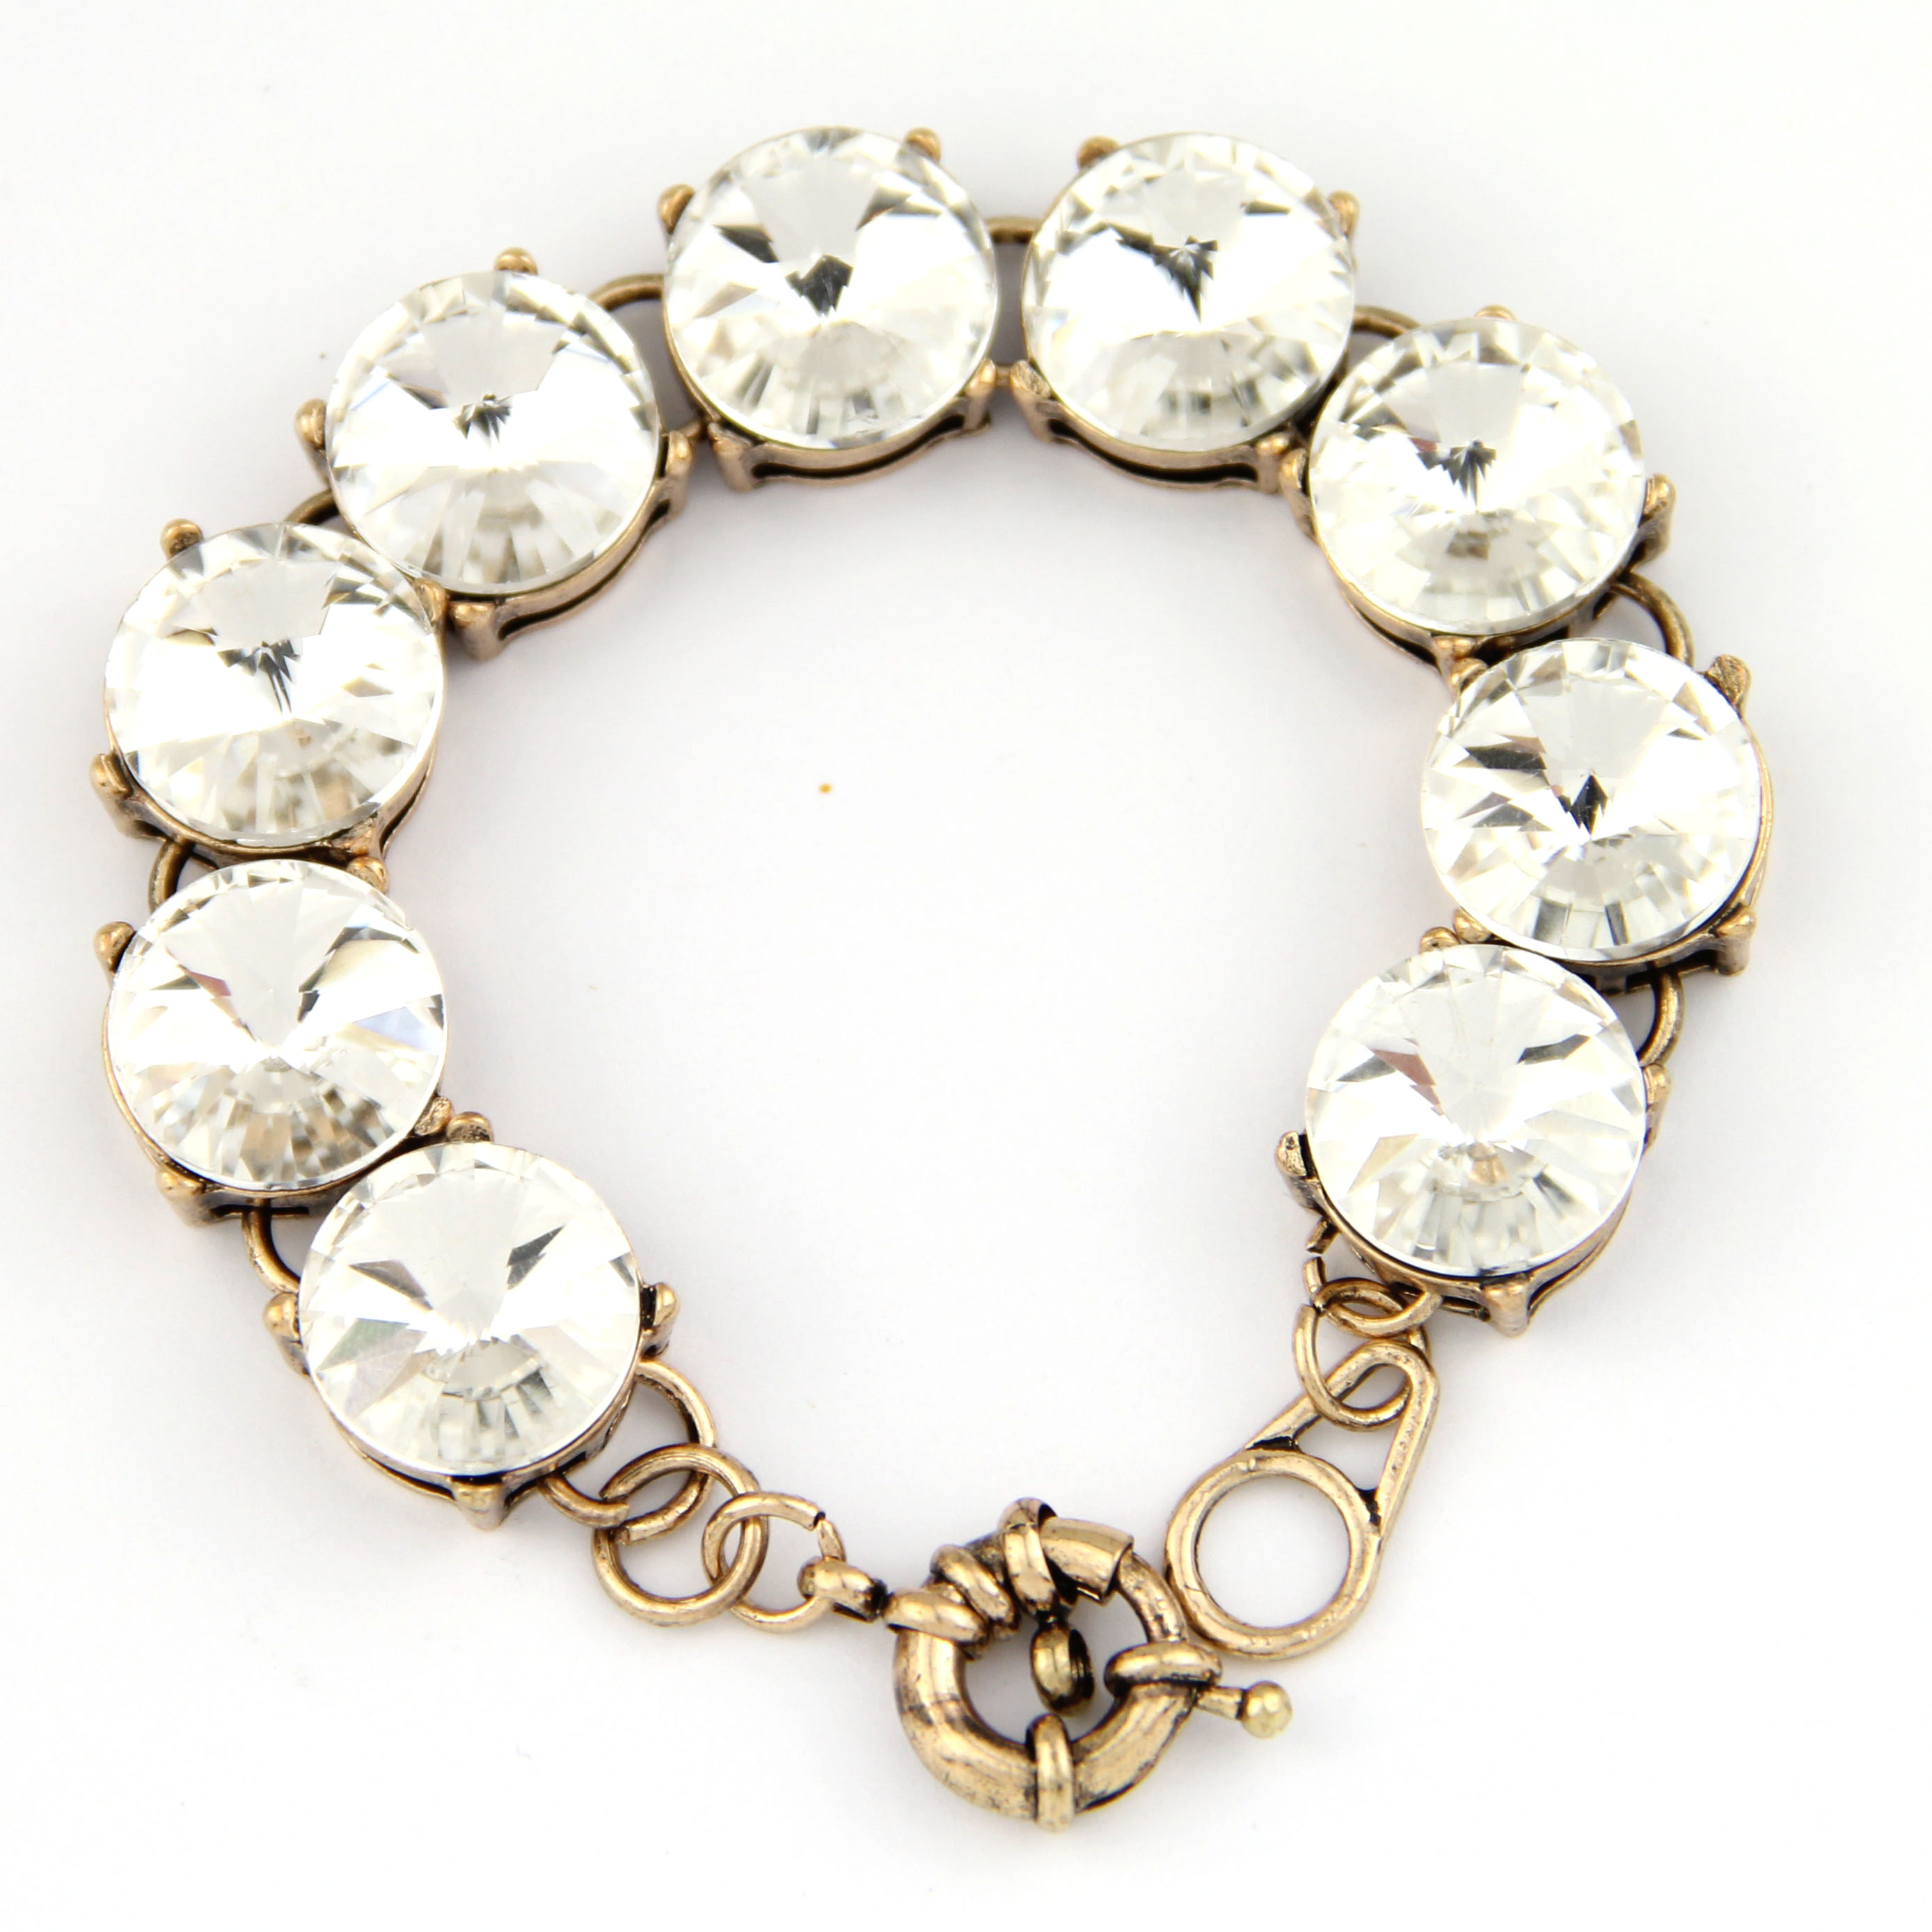 gem bracelet stretch on jewelry watches overstock free multi shipping product orders over